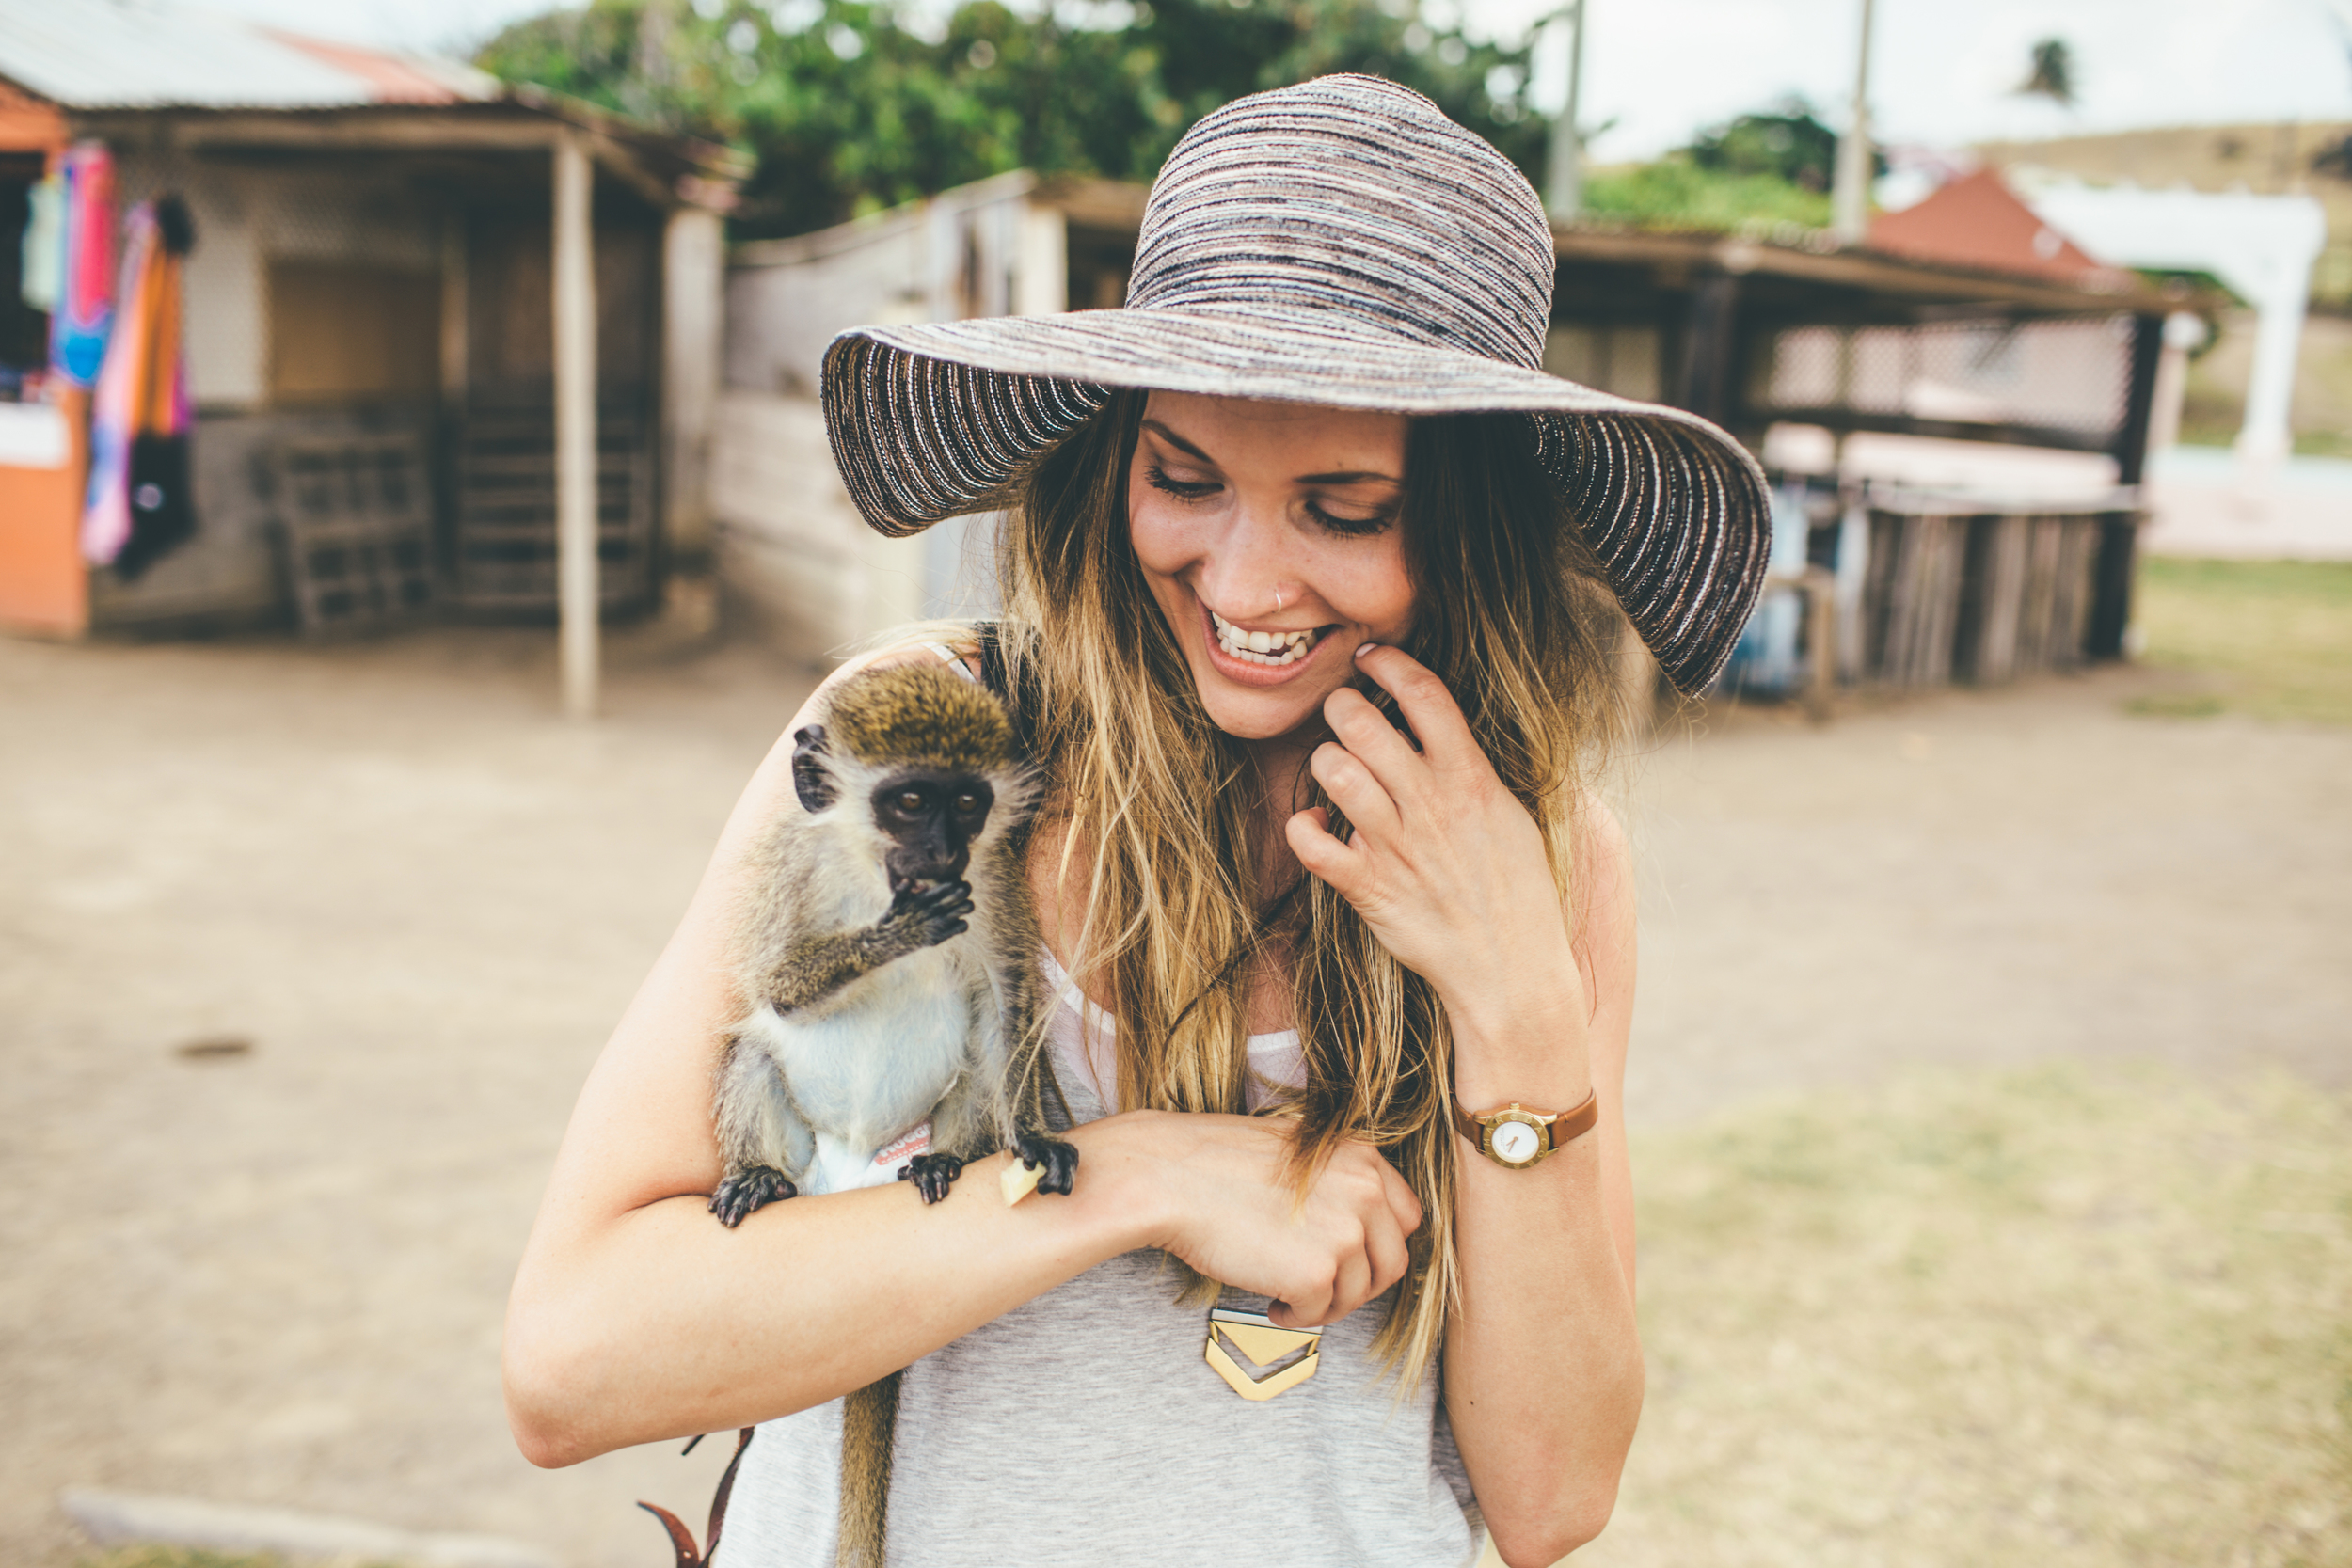 St Kitts: First time I had ever held a monkey. And it was a baby.